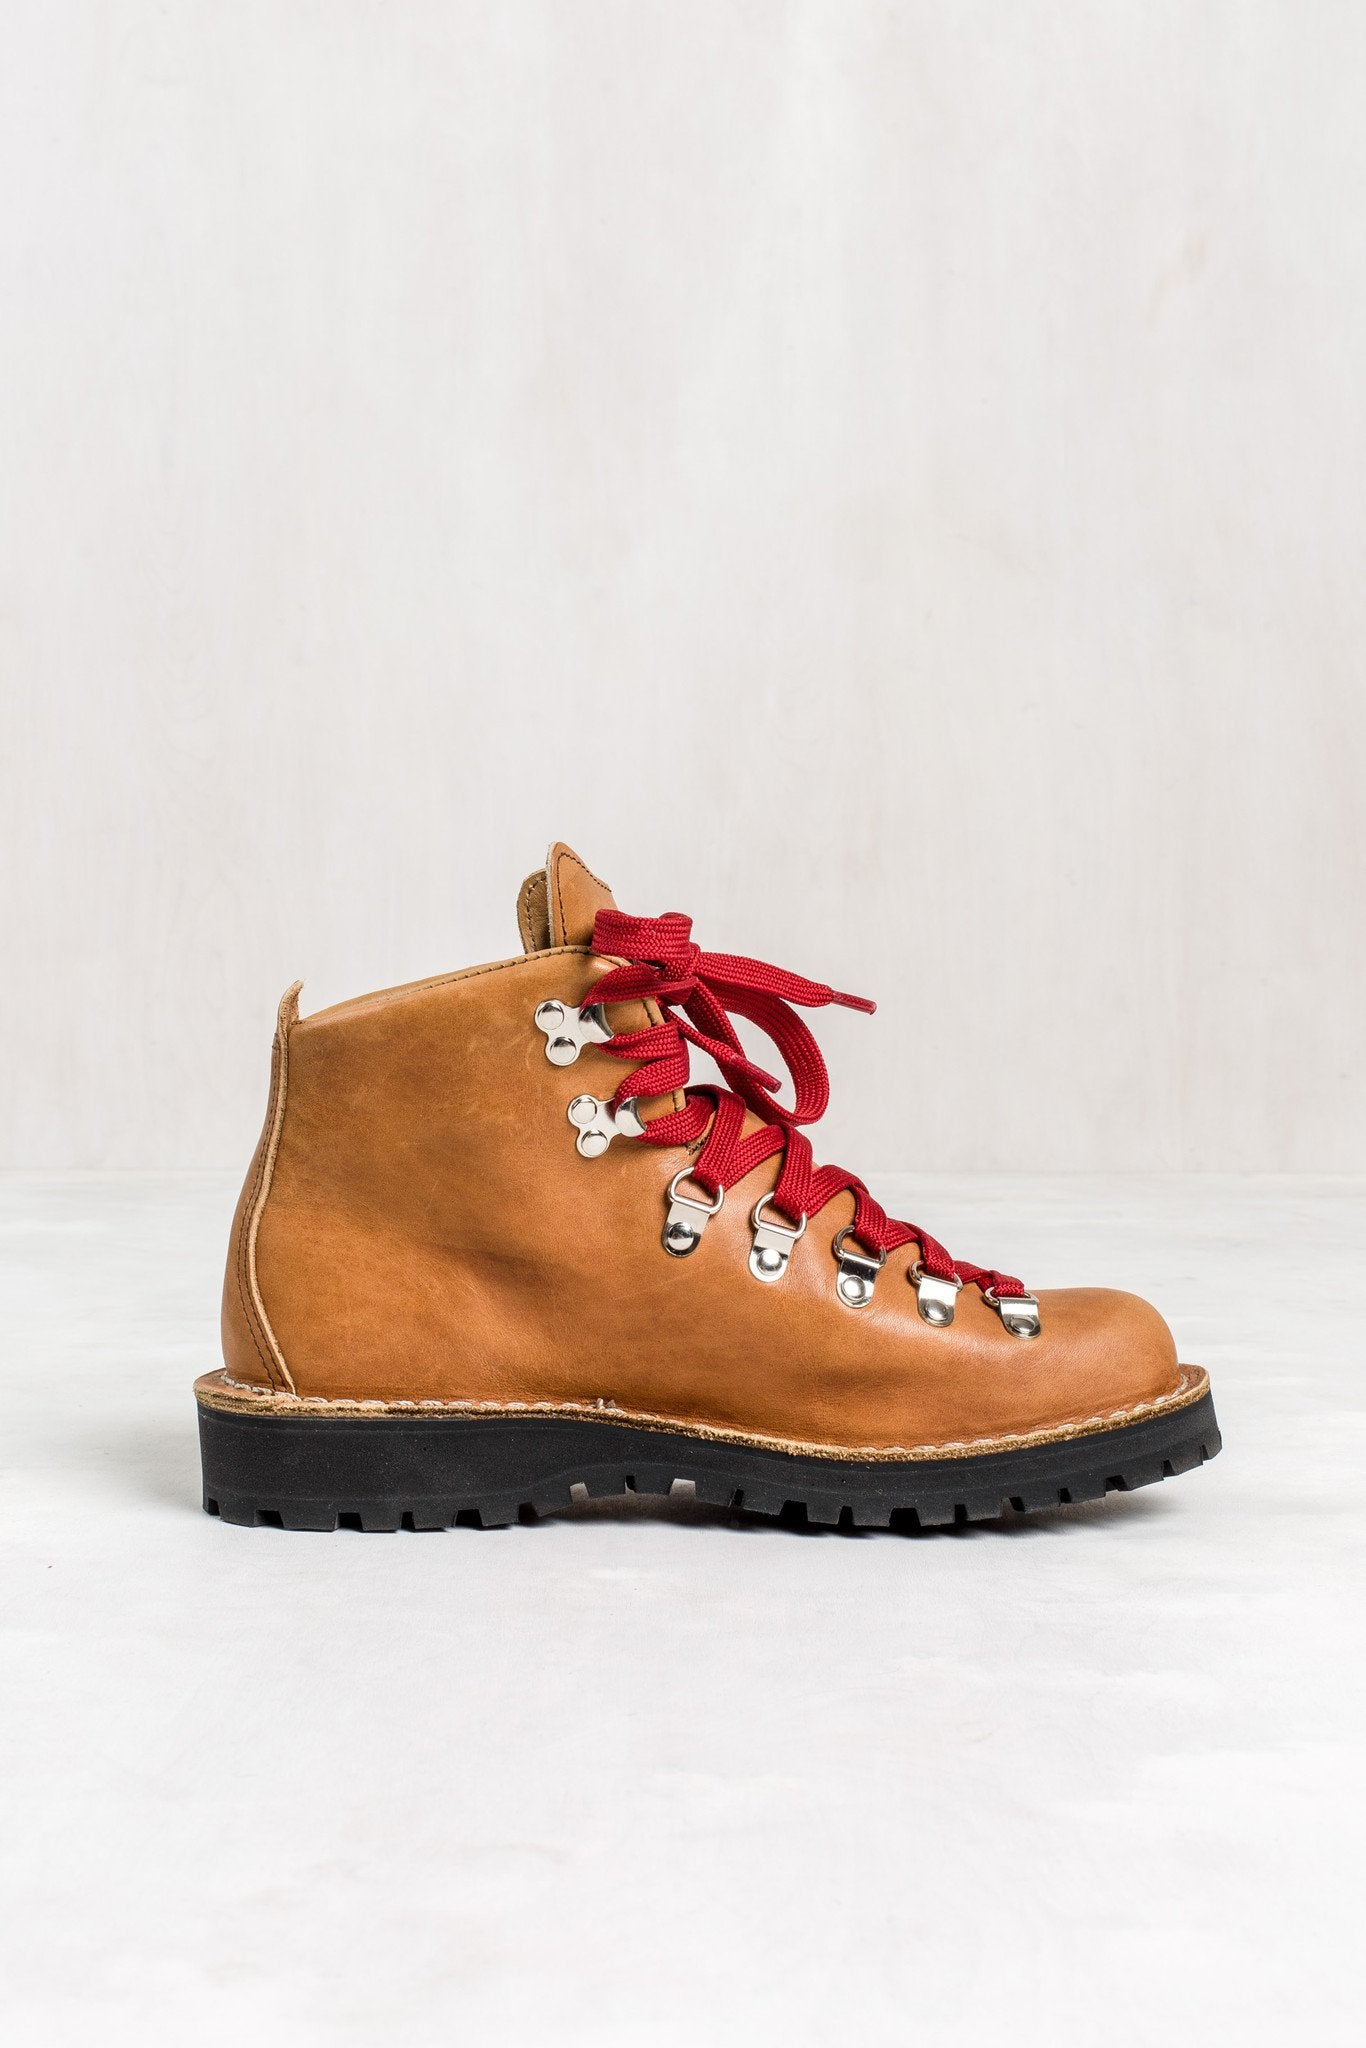 Women's Danner Mountain Light Cascade Boots